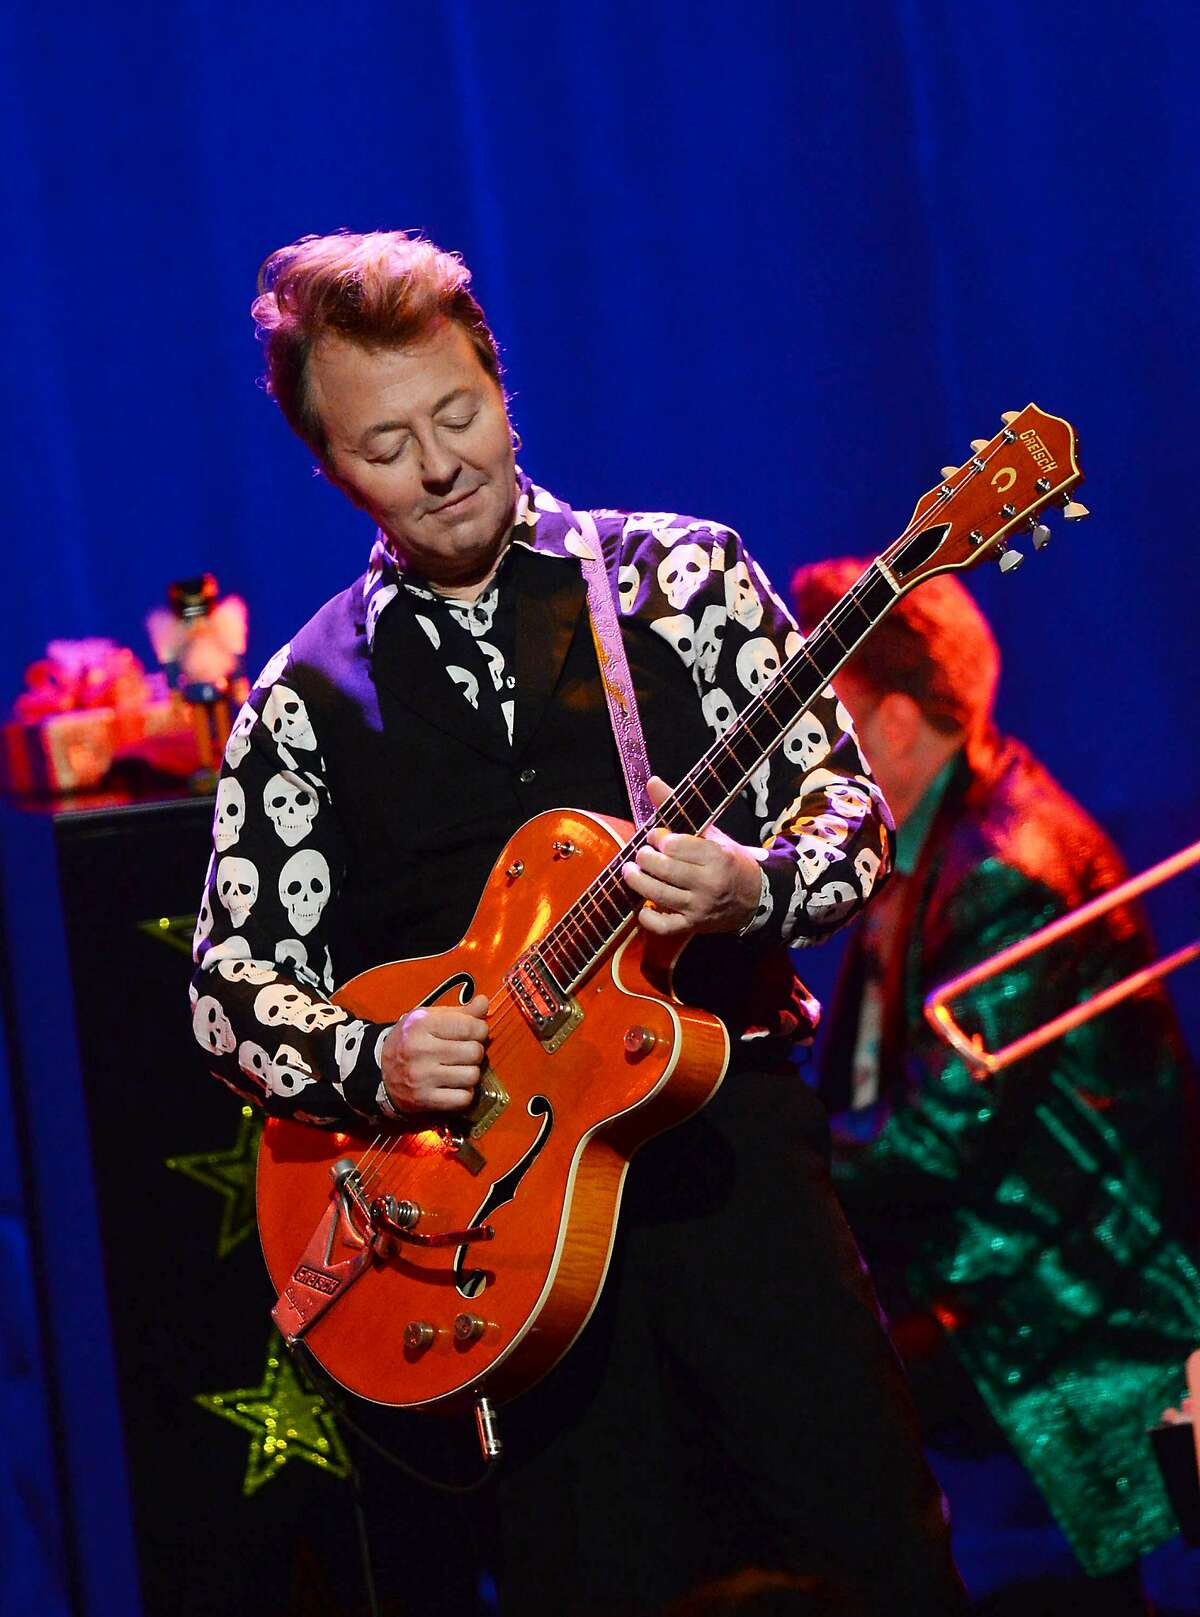 NEW YORK, NY - DECEMBER 01: Musician Brian Setzer performs a Private